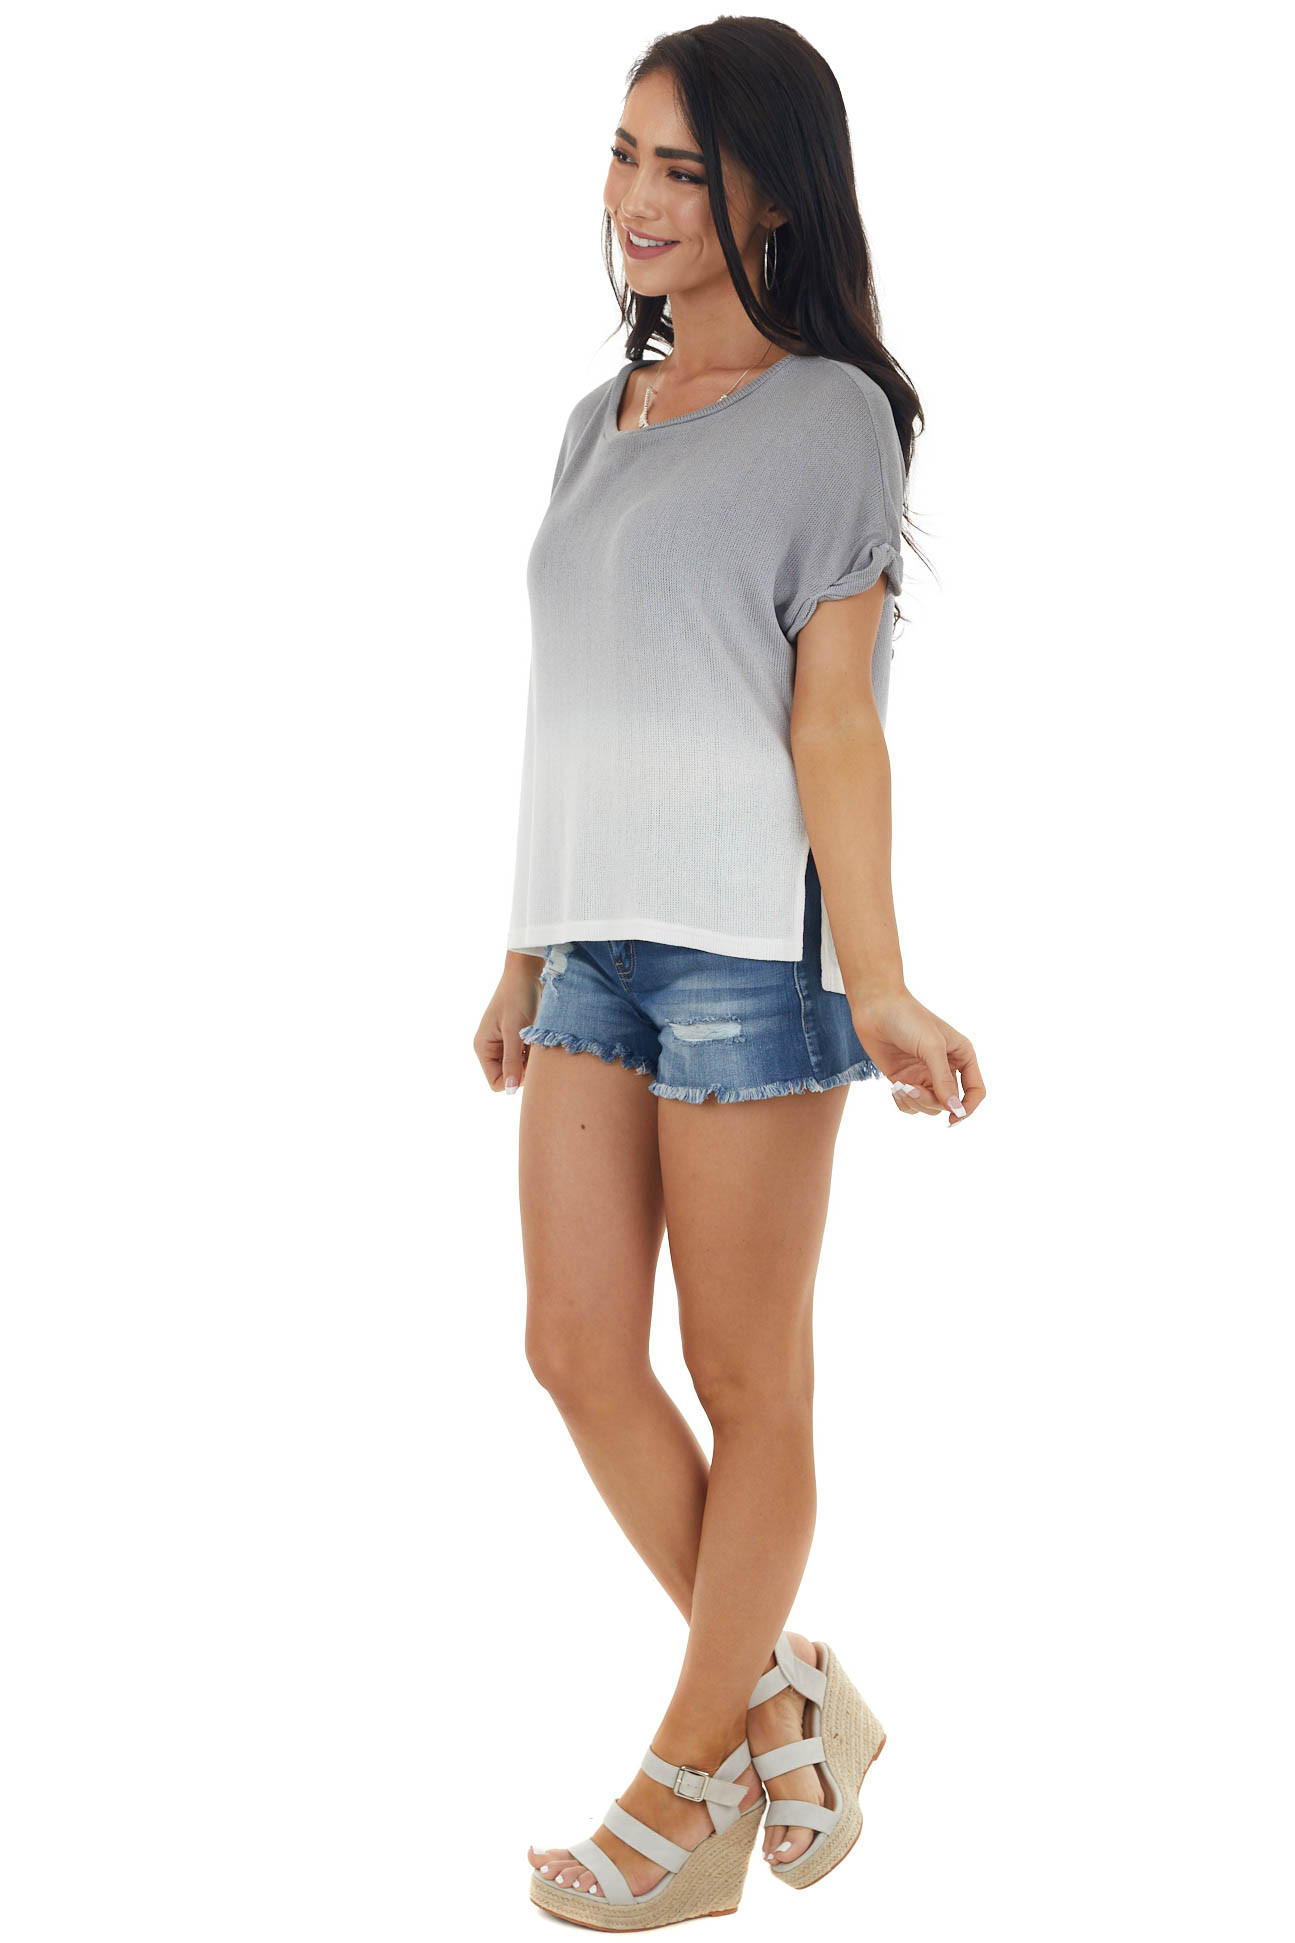 Slate Grey and Ivory Ombre Loose Knit Short Sleeve Top